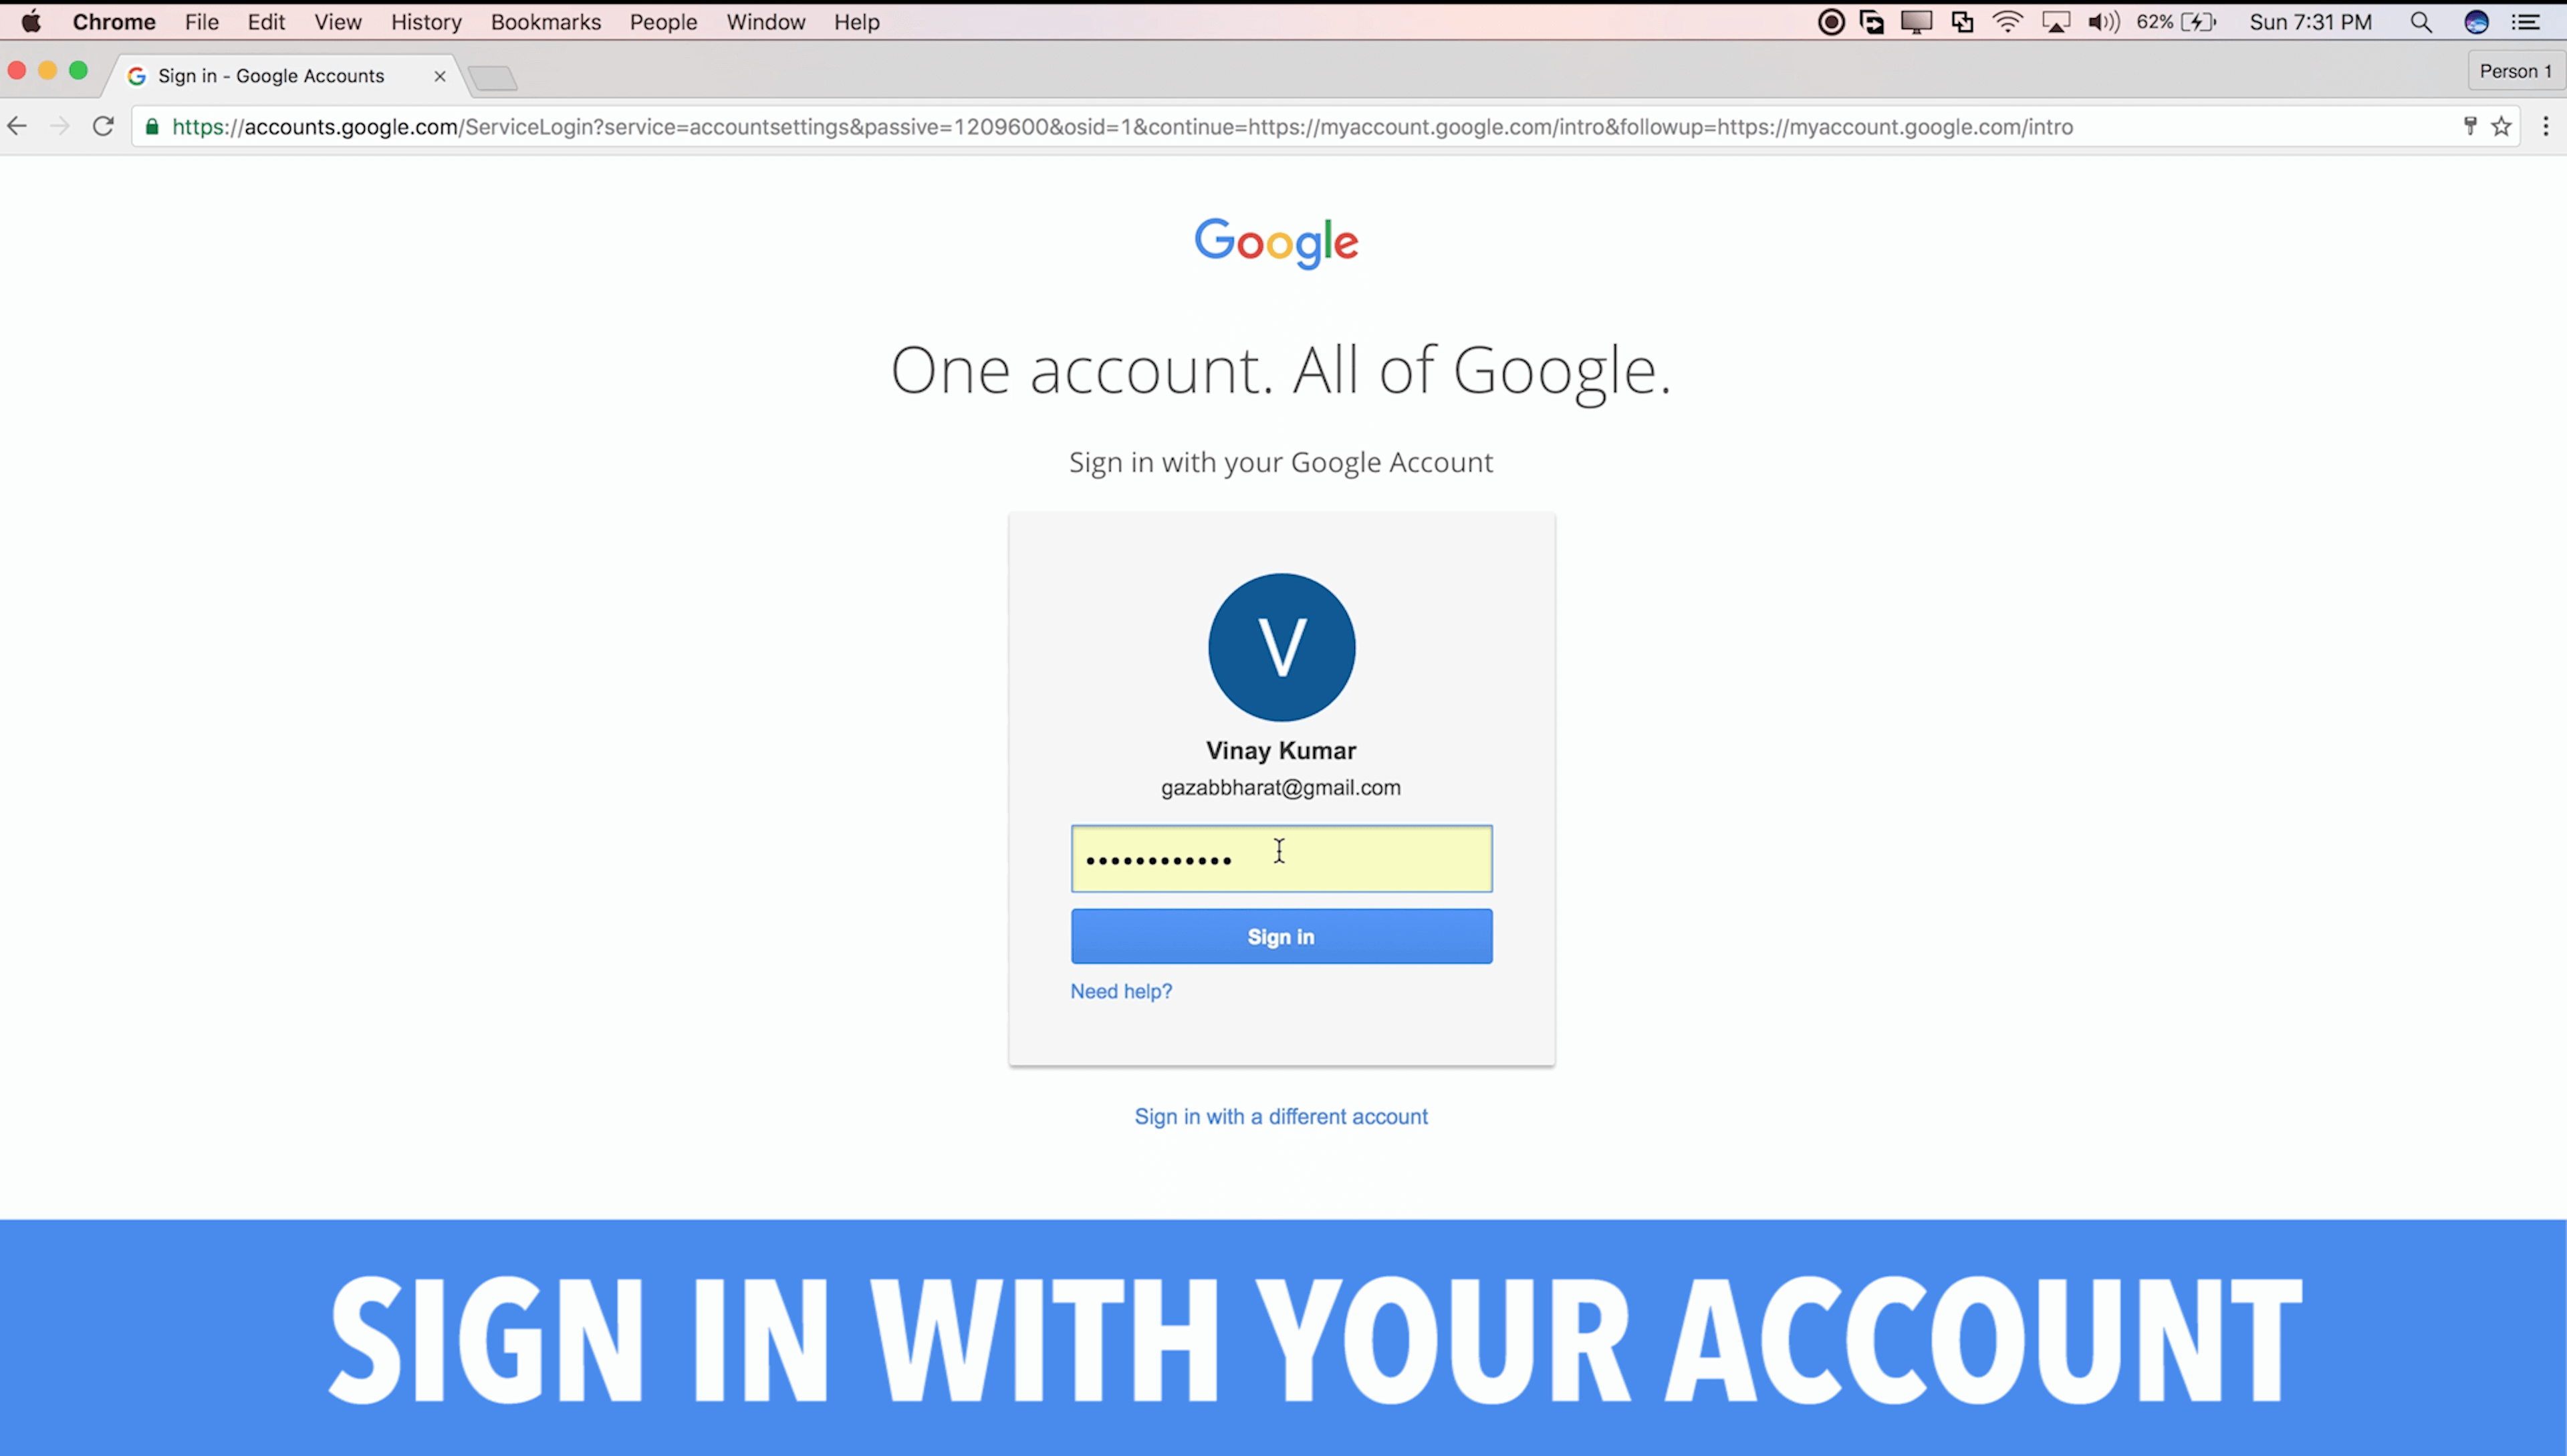 Sign in with your account